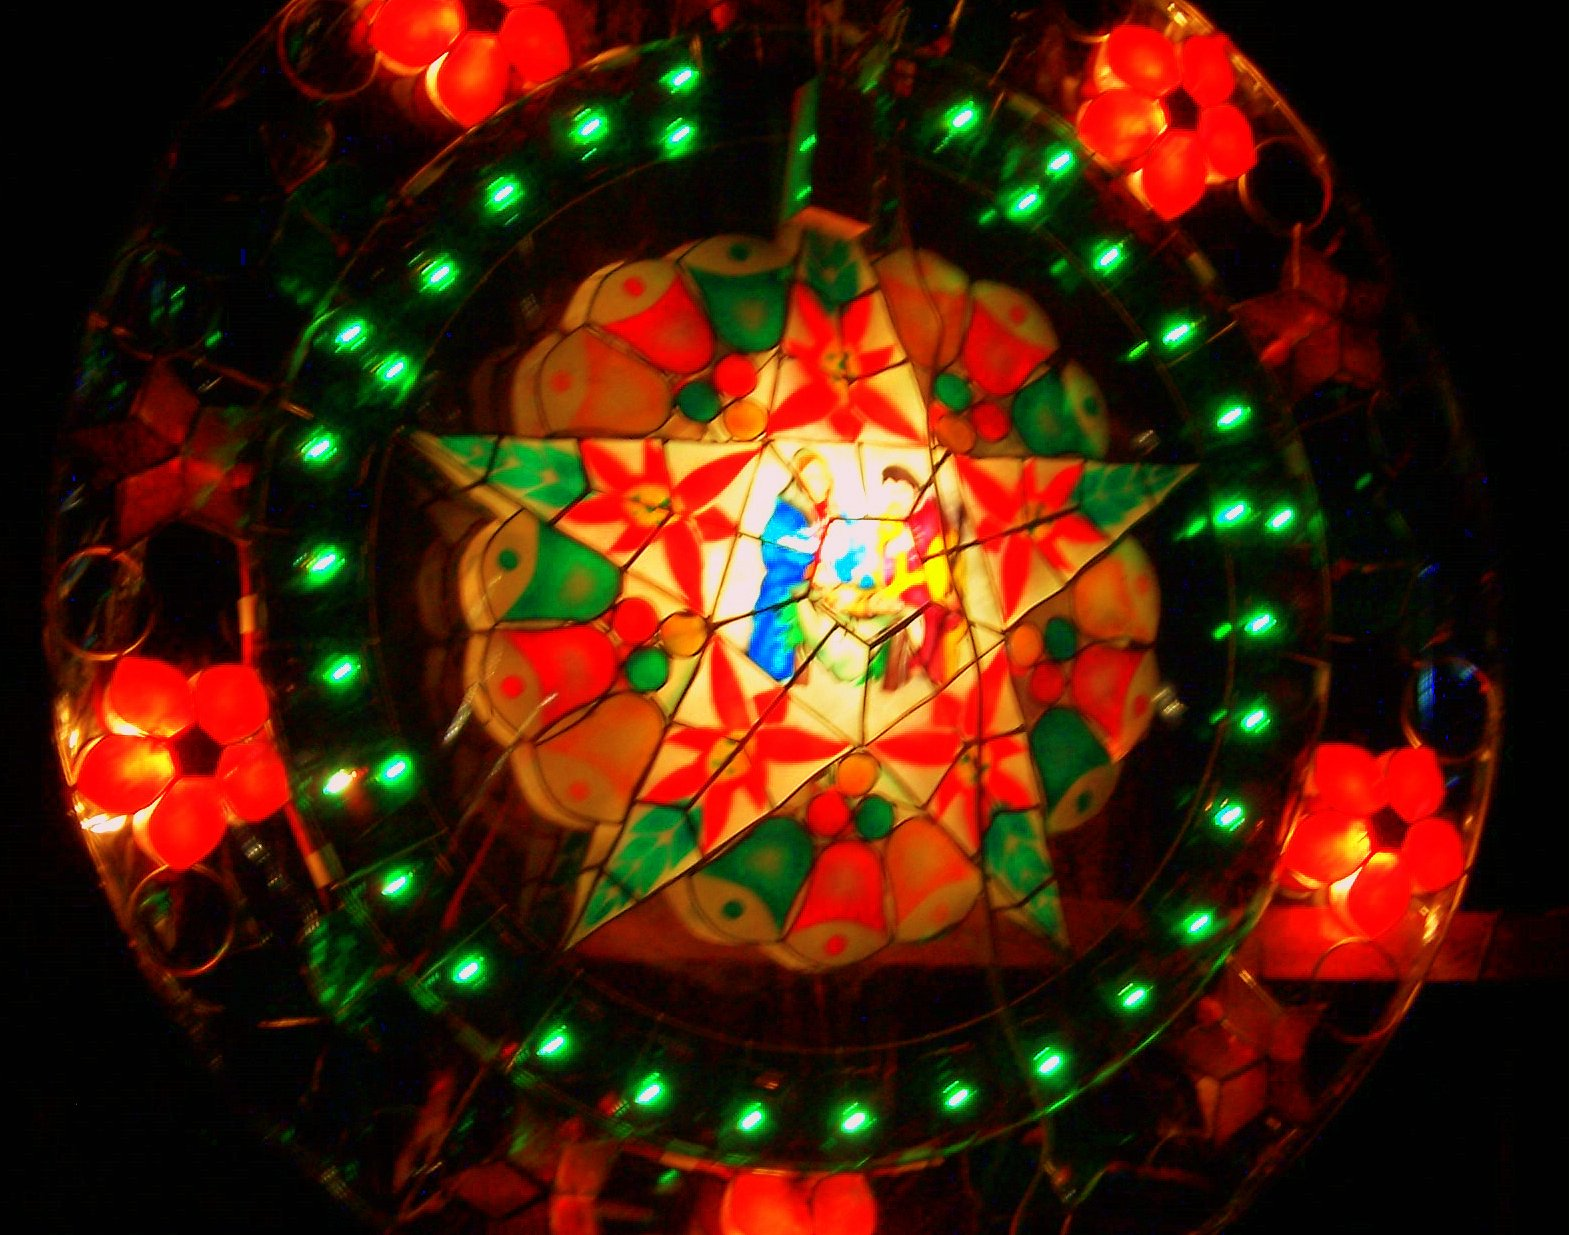 Enlighten Students On The Festival Of Lights Holiday Led Lighting News And Articles